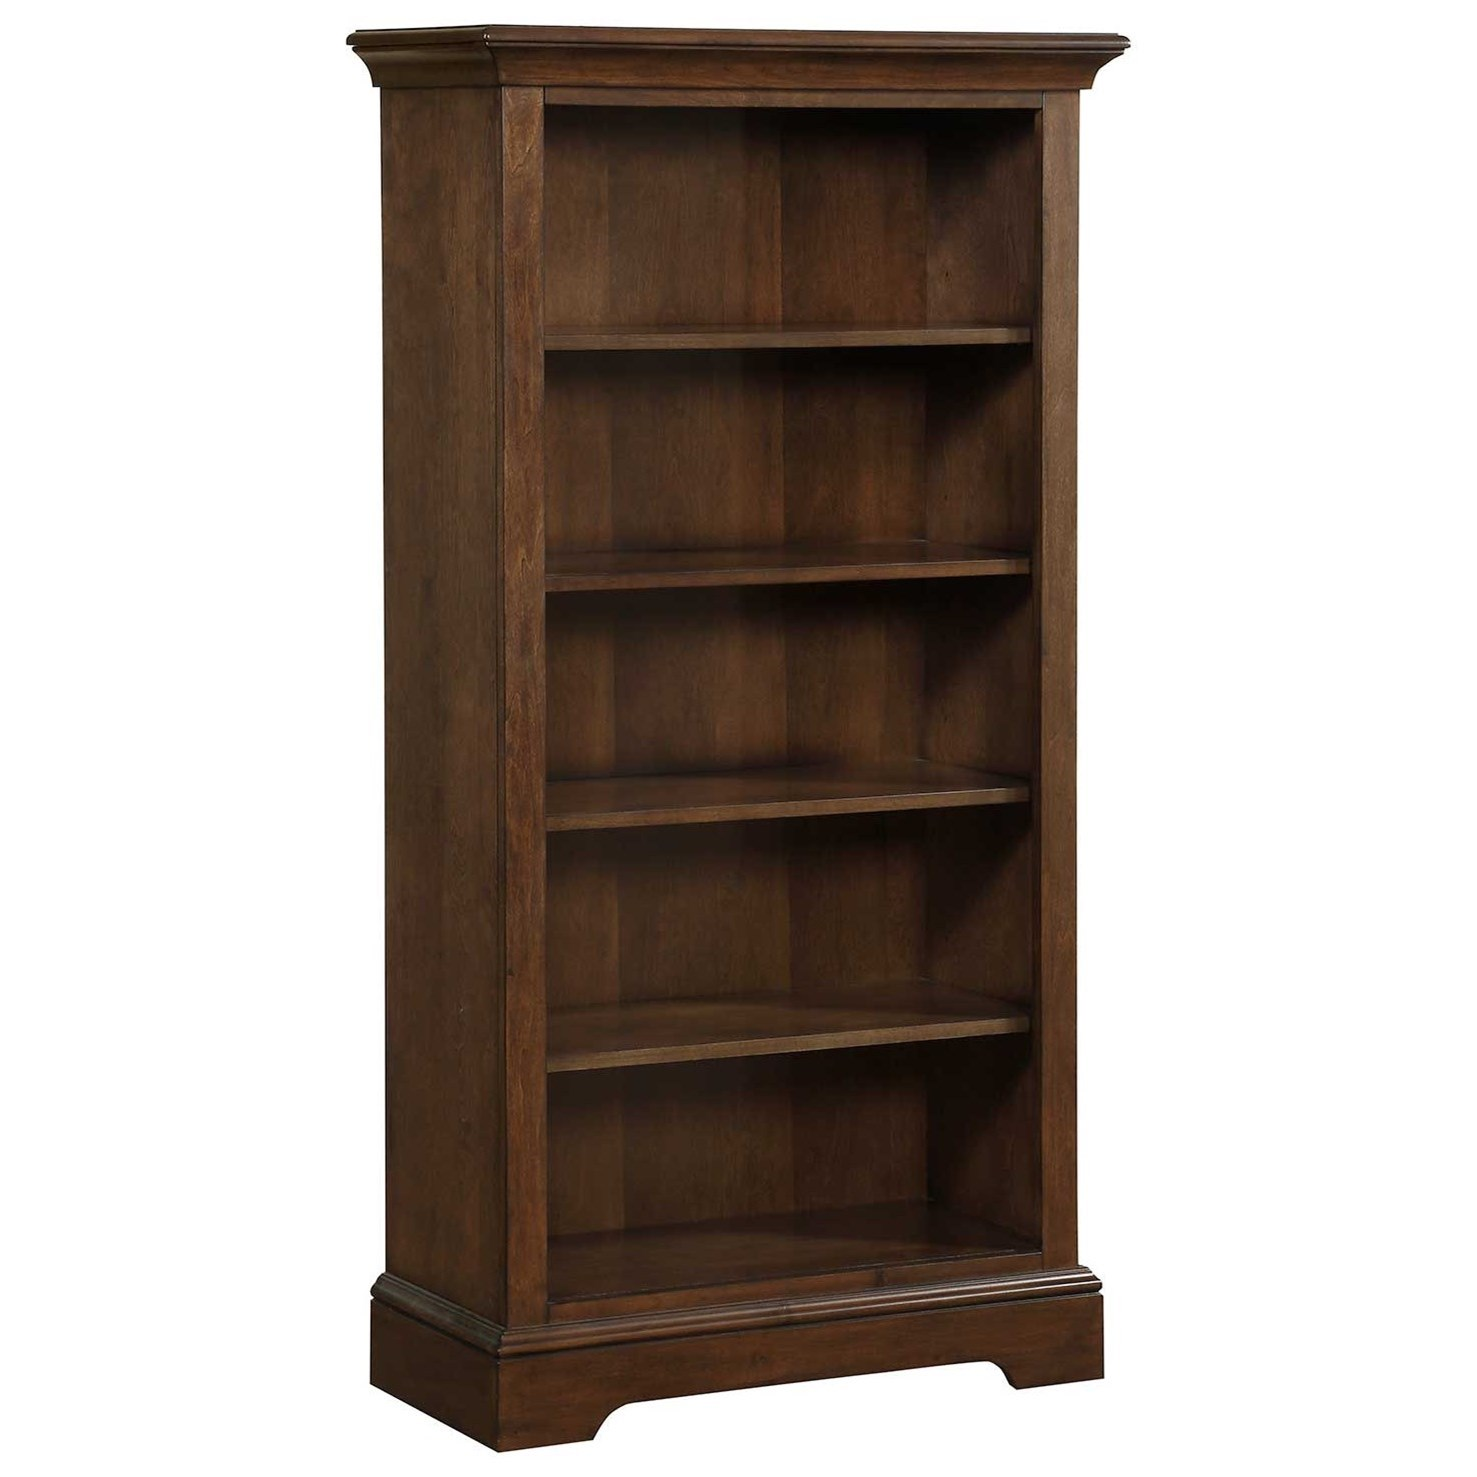 Tamarack Open Bookcase by Winners Only at Mueller Furniture